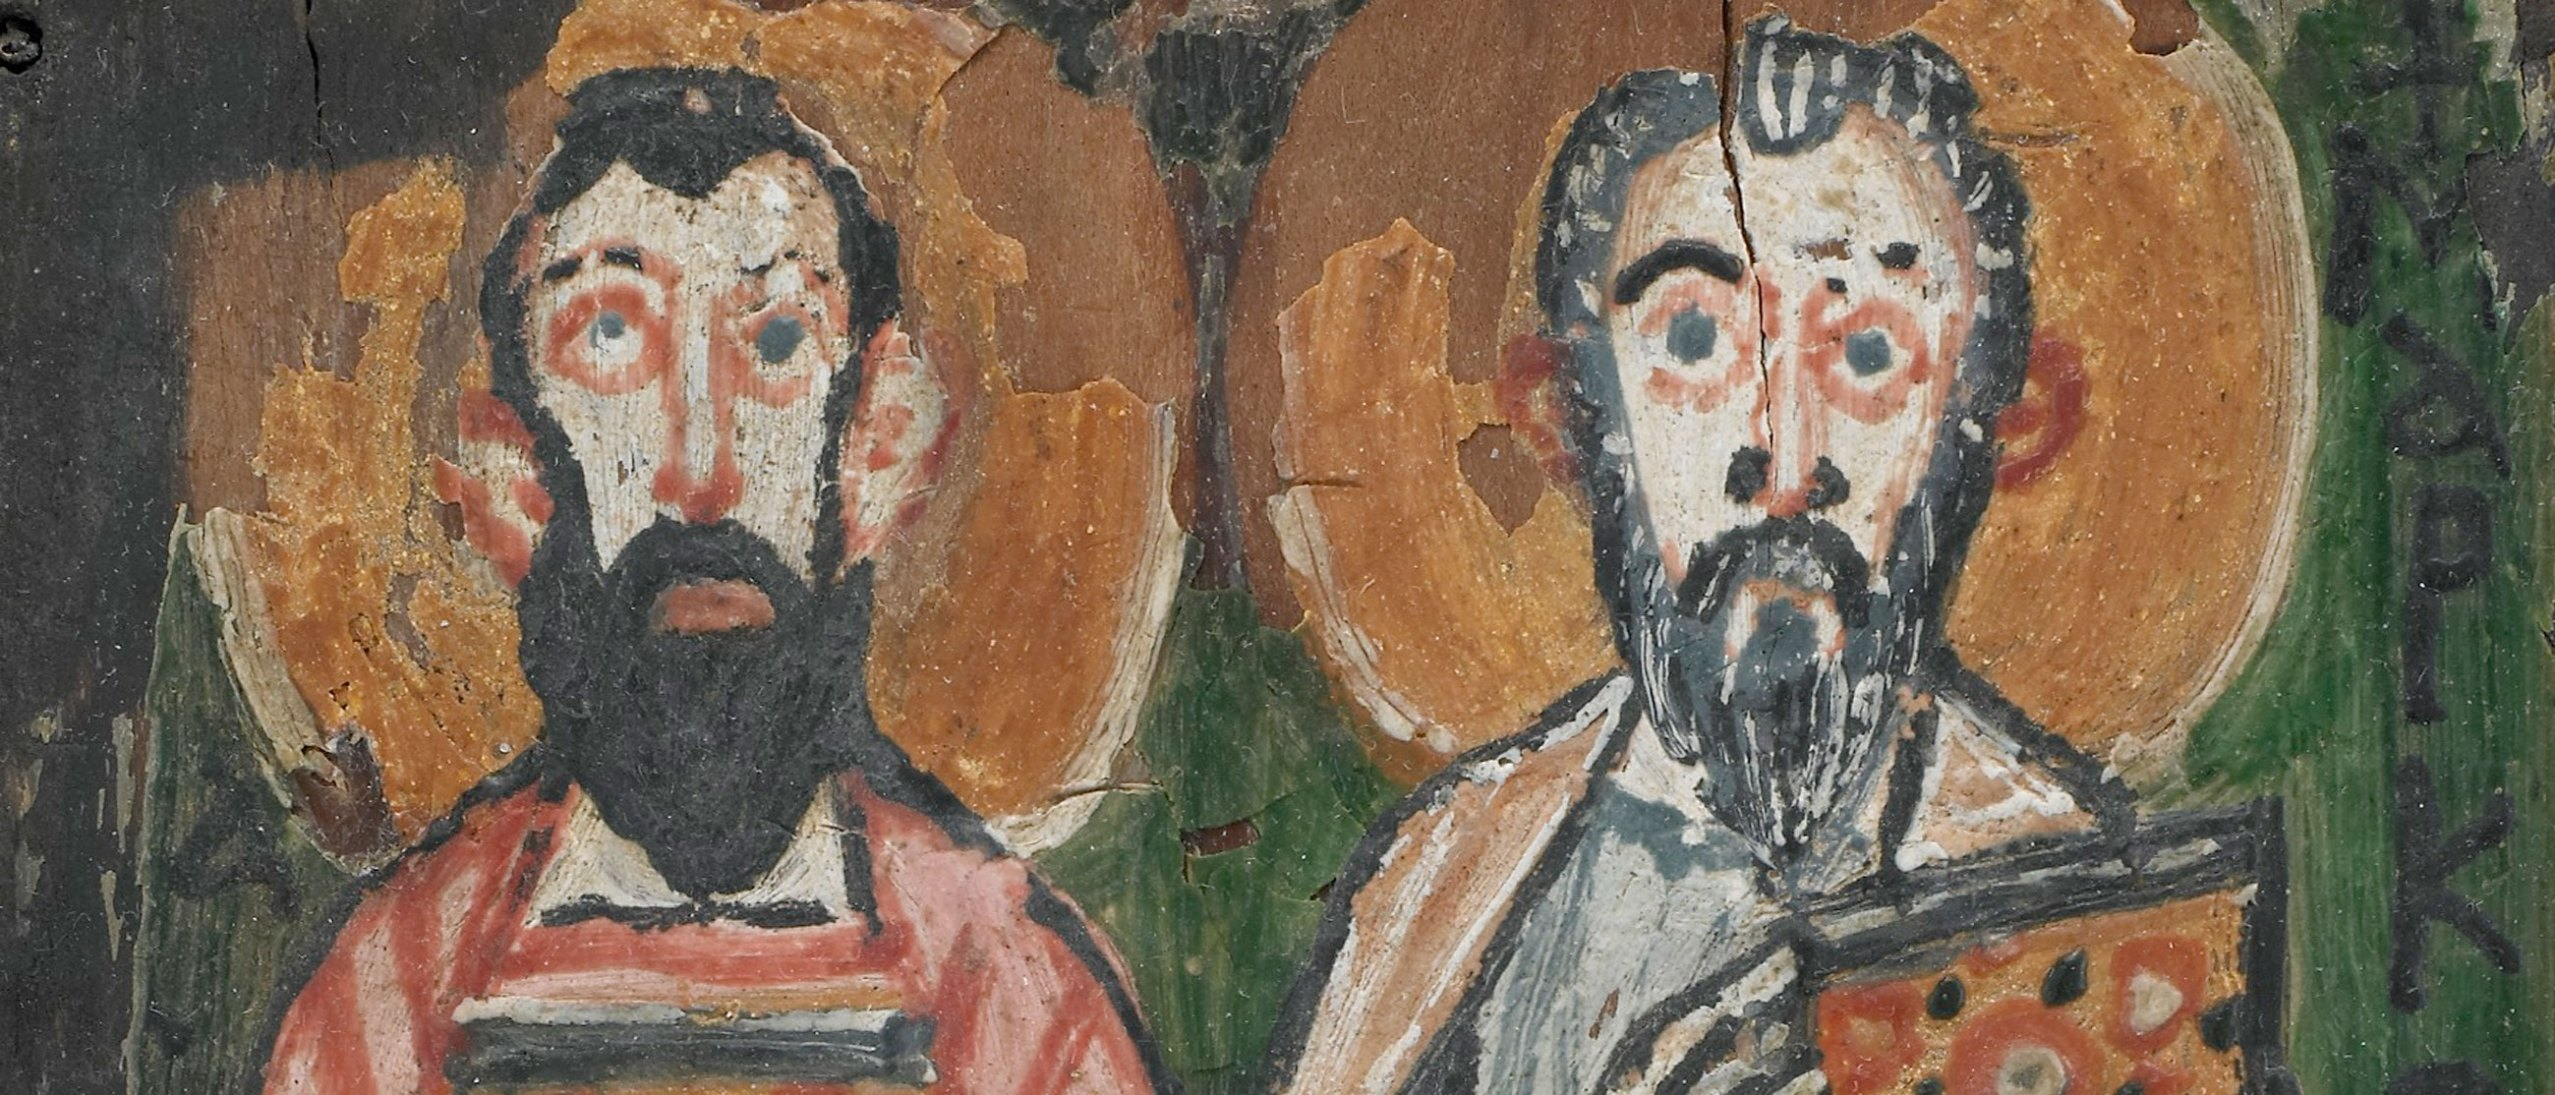 Detail from St. Mark and St. Luke; Right cover of The Washington Manuscript of the Gospels, F1906.298